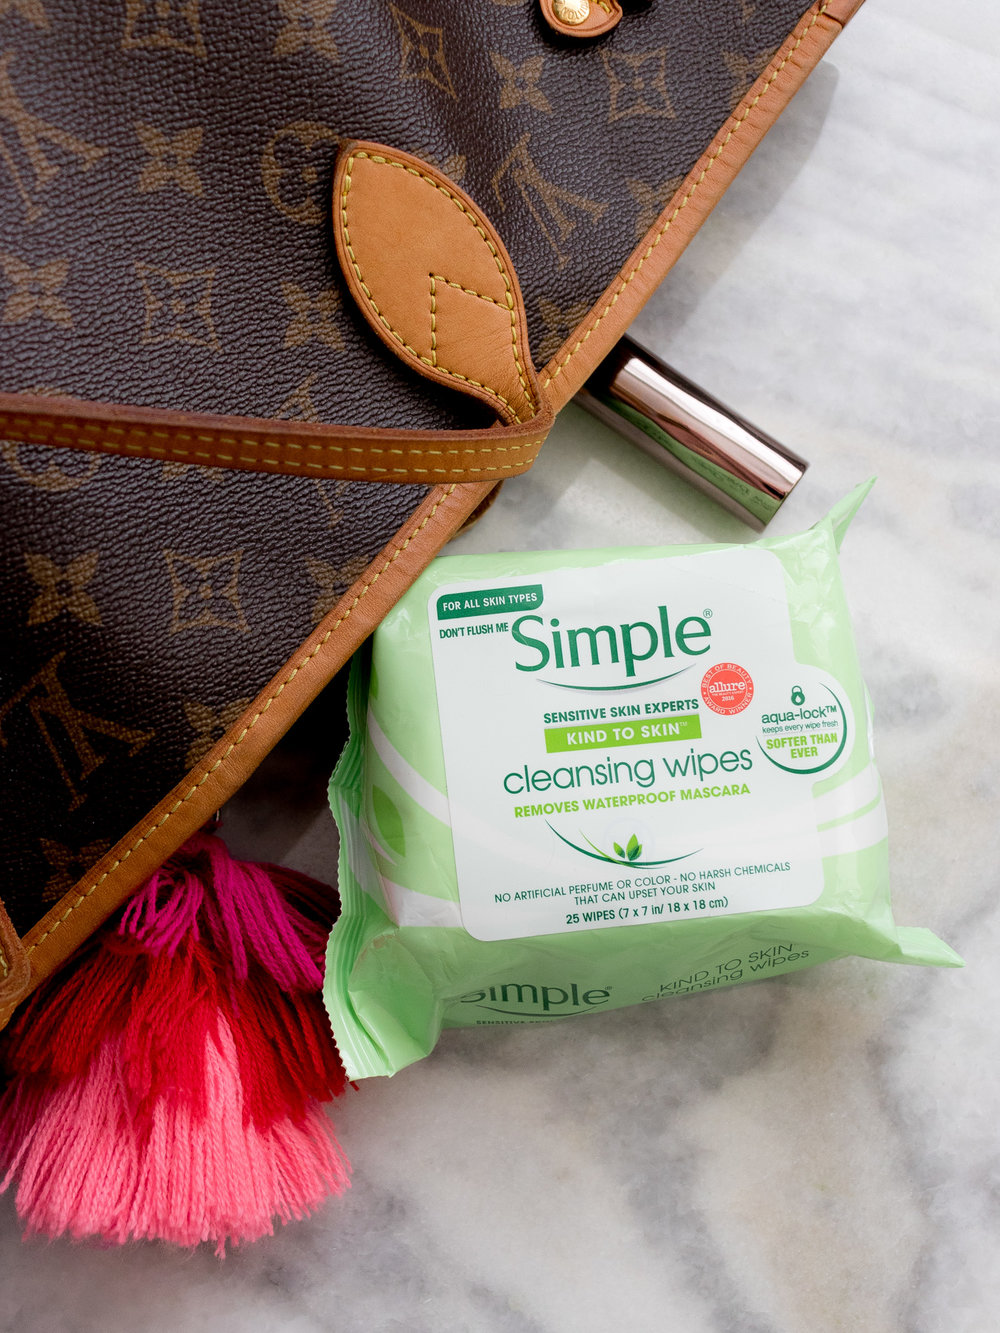 Simple Cleansing Wipes in Purse